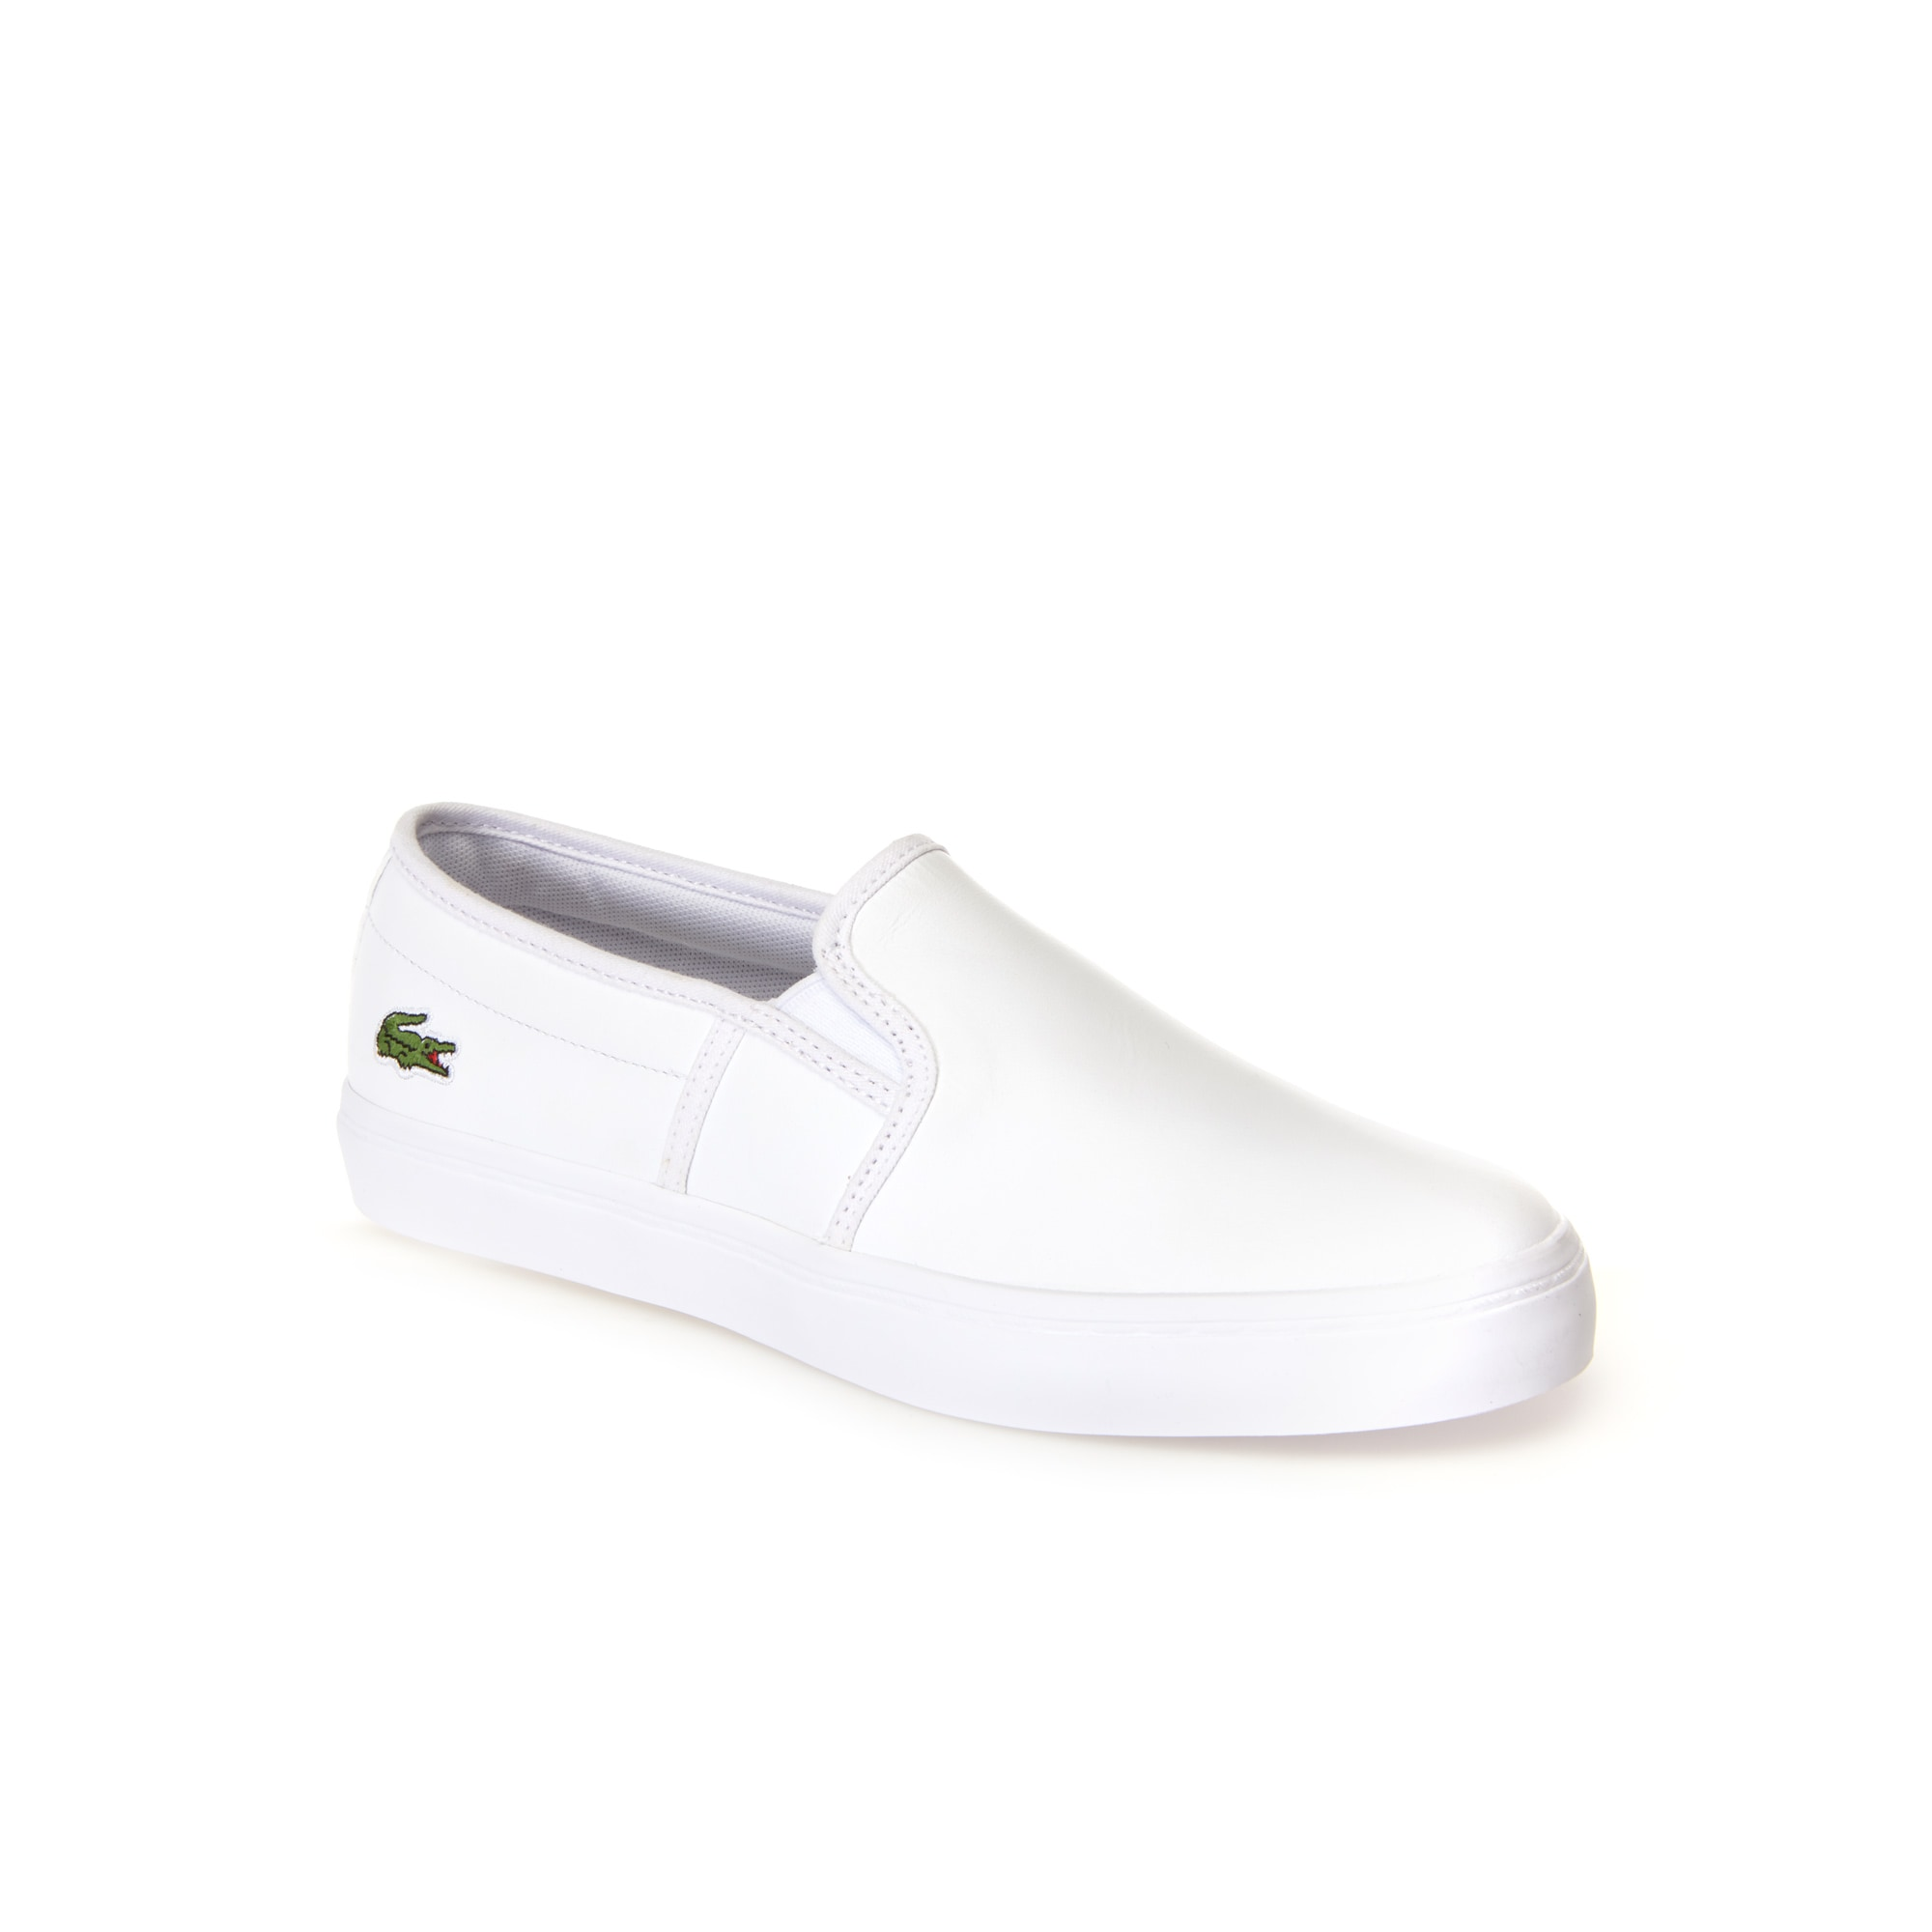 Sneakers senza stringhe Gazon in pelle